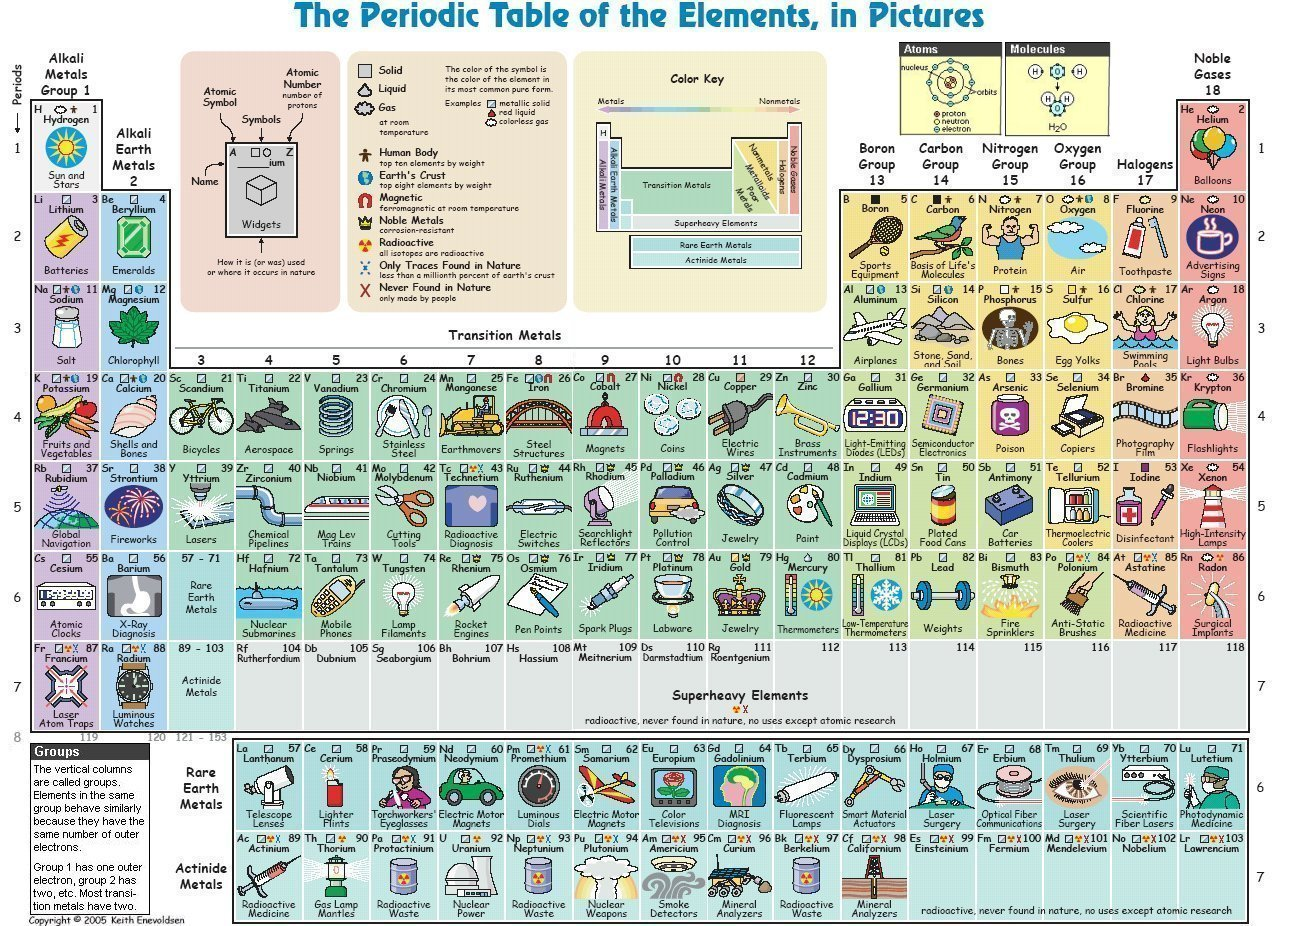 http://universe-review.ca/I13-01-periodictable2.jpg